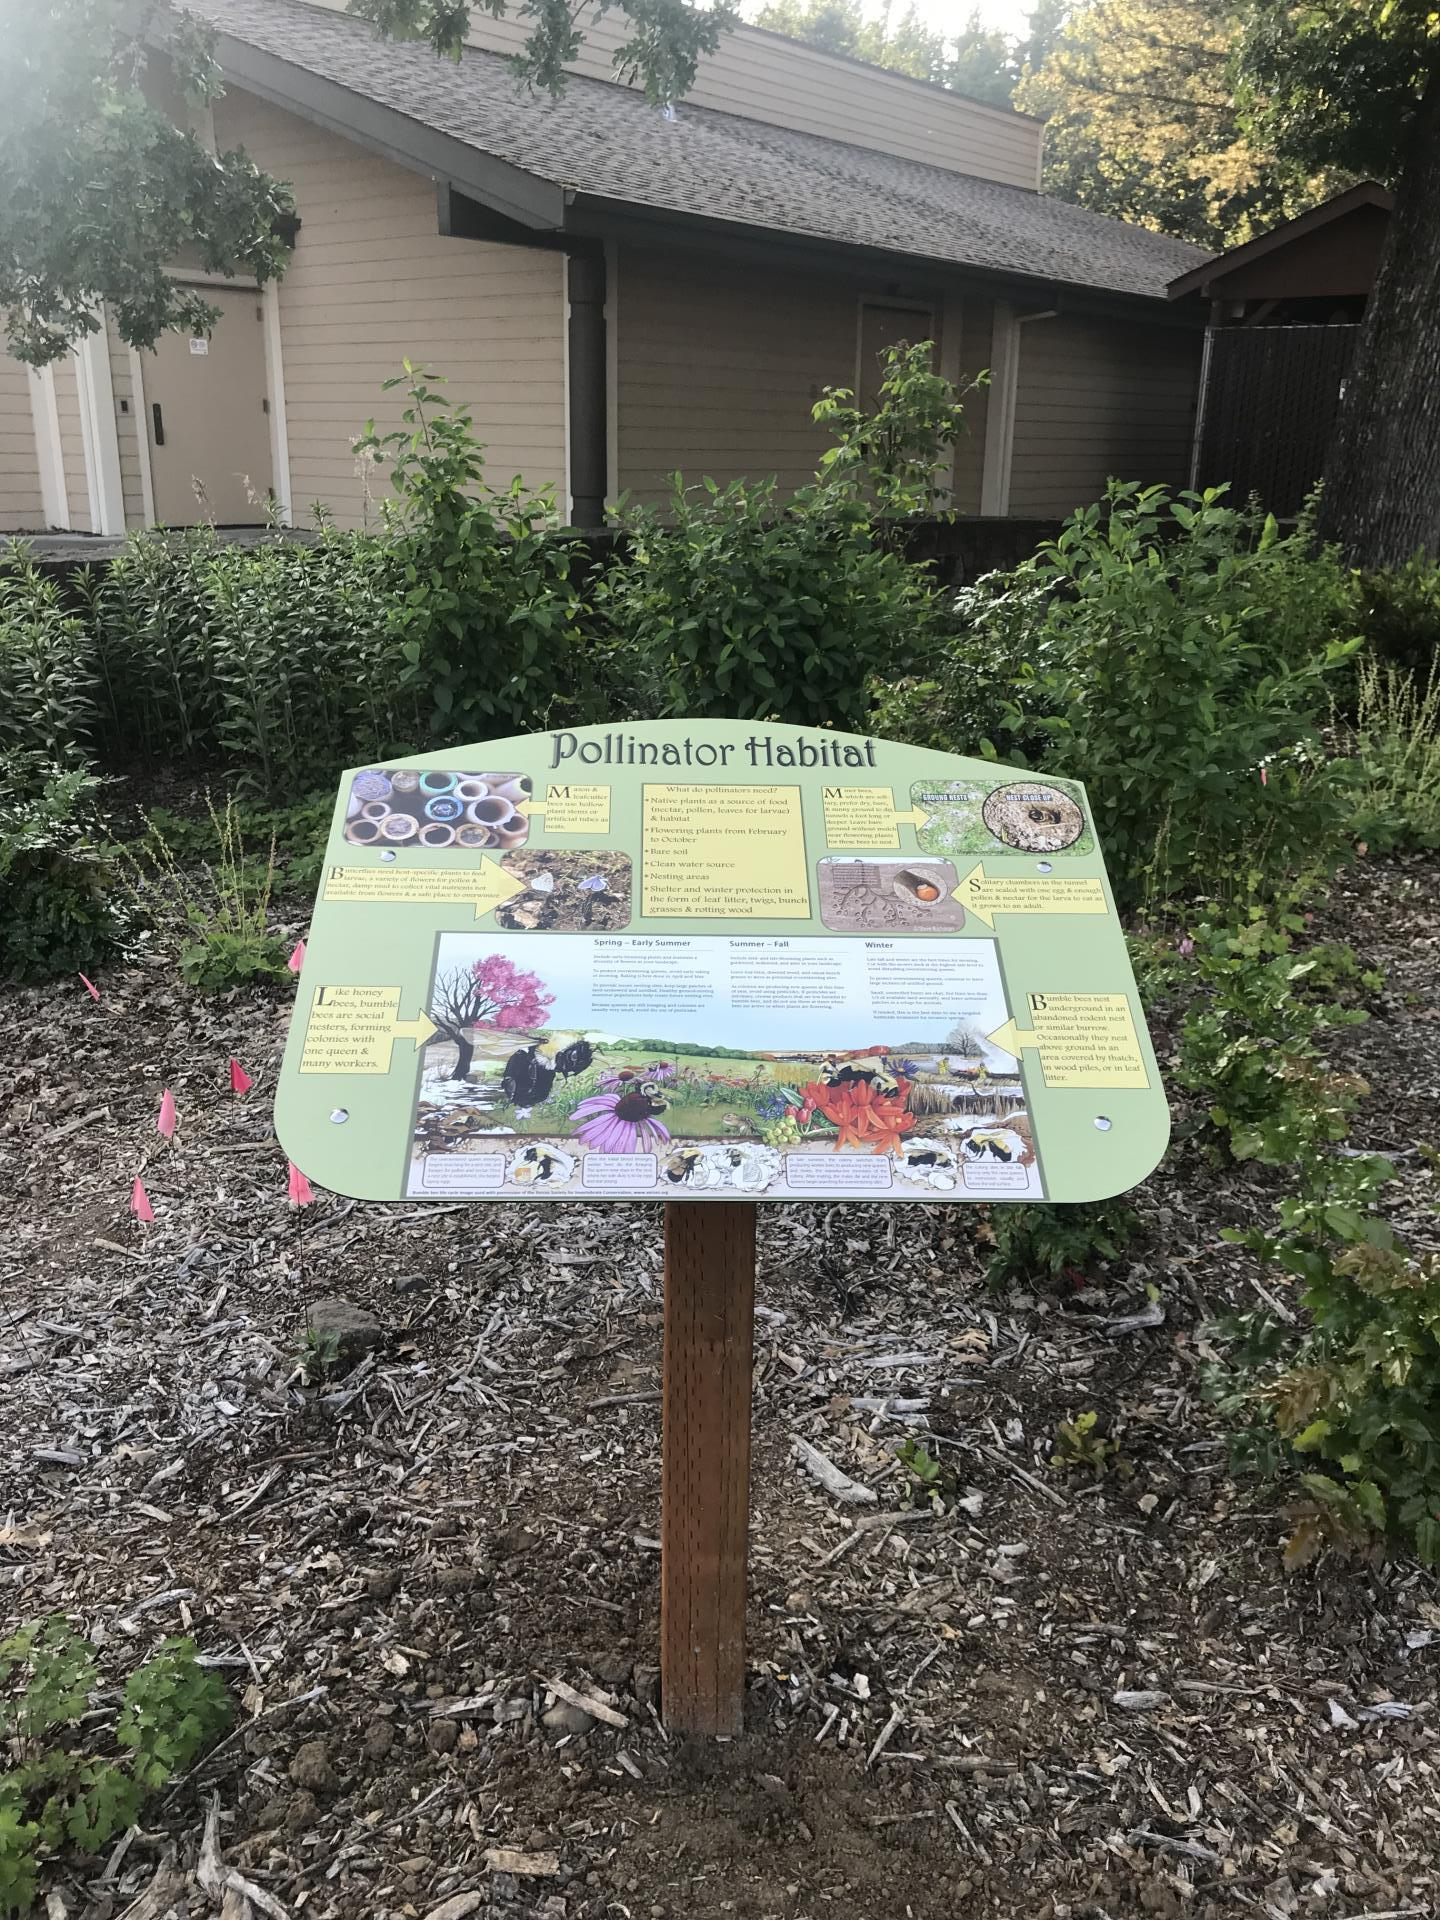 pollinator habitat interp sign in garden